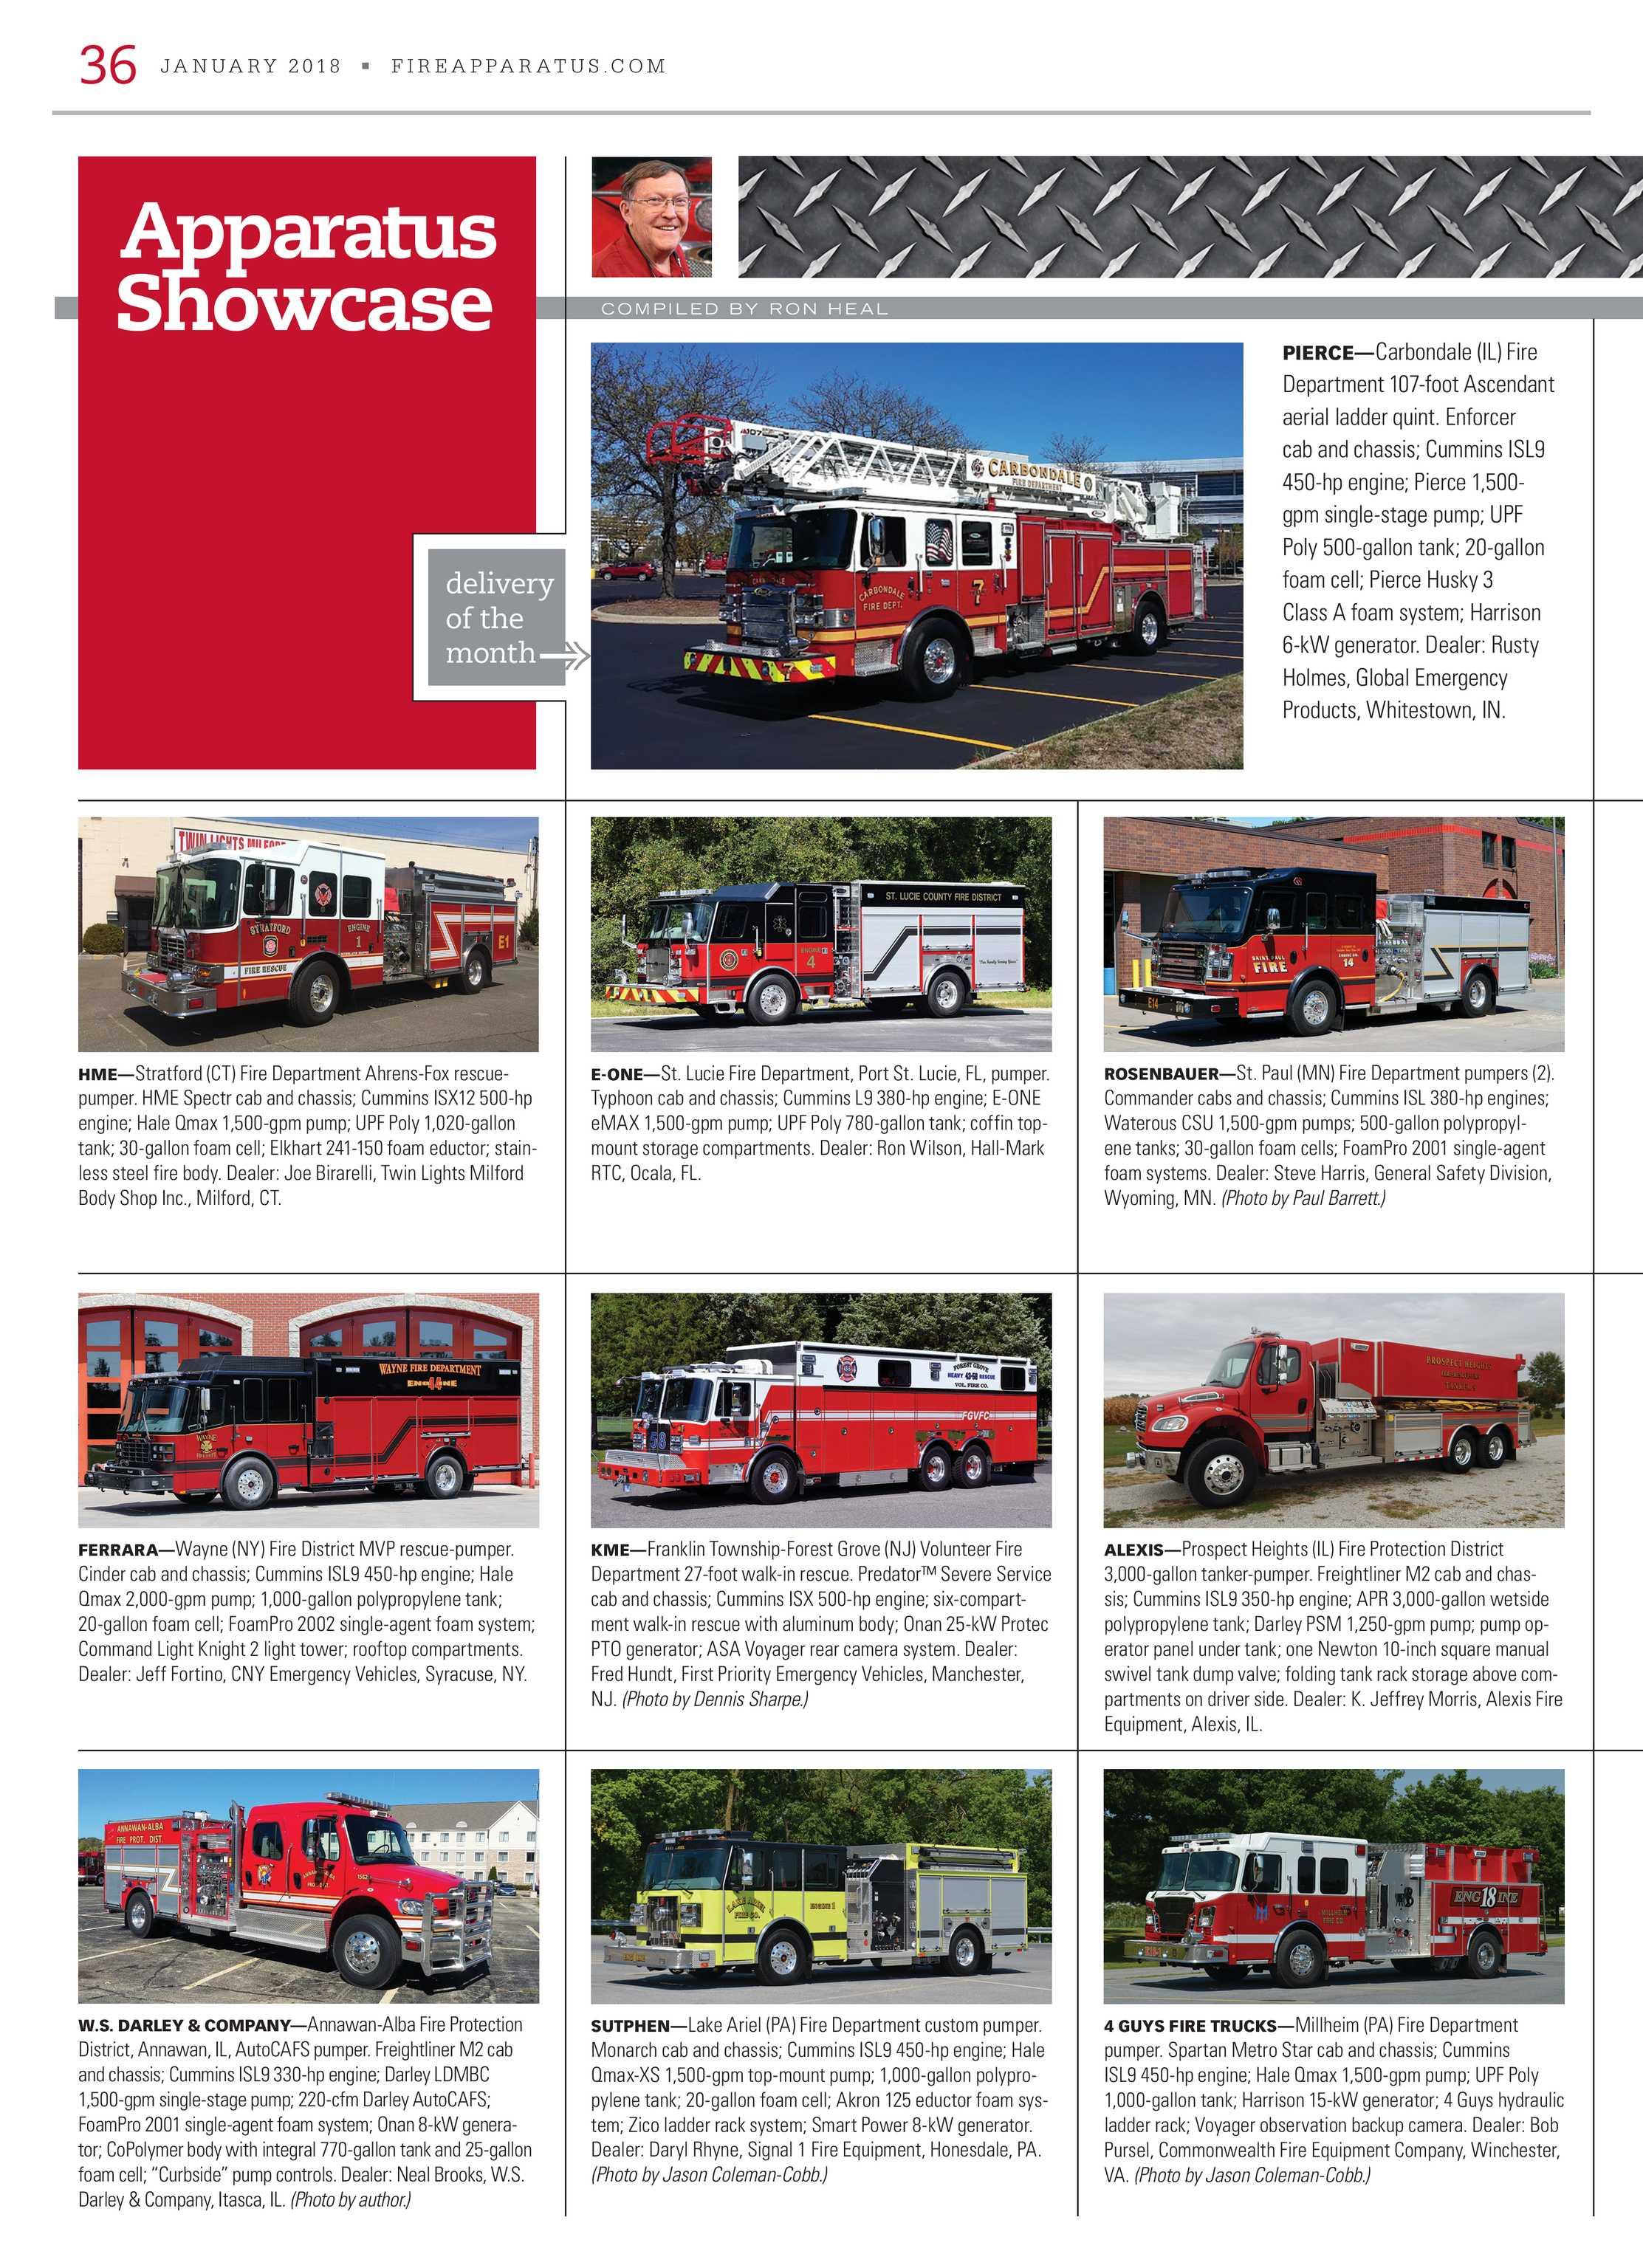 Fire Apparatus Magazine - January 2018 - page 36